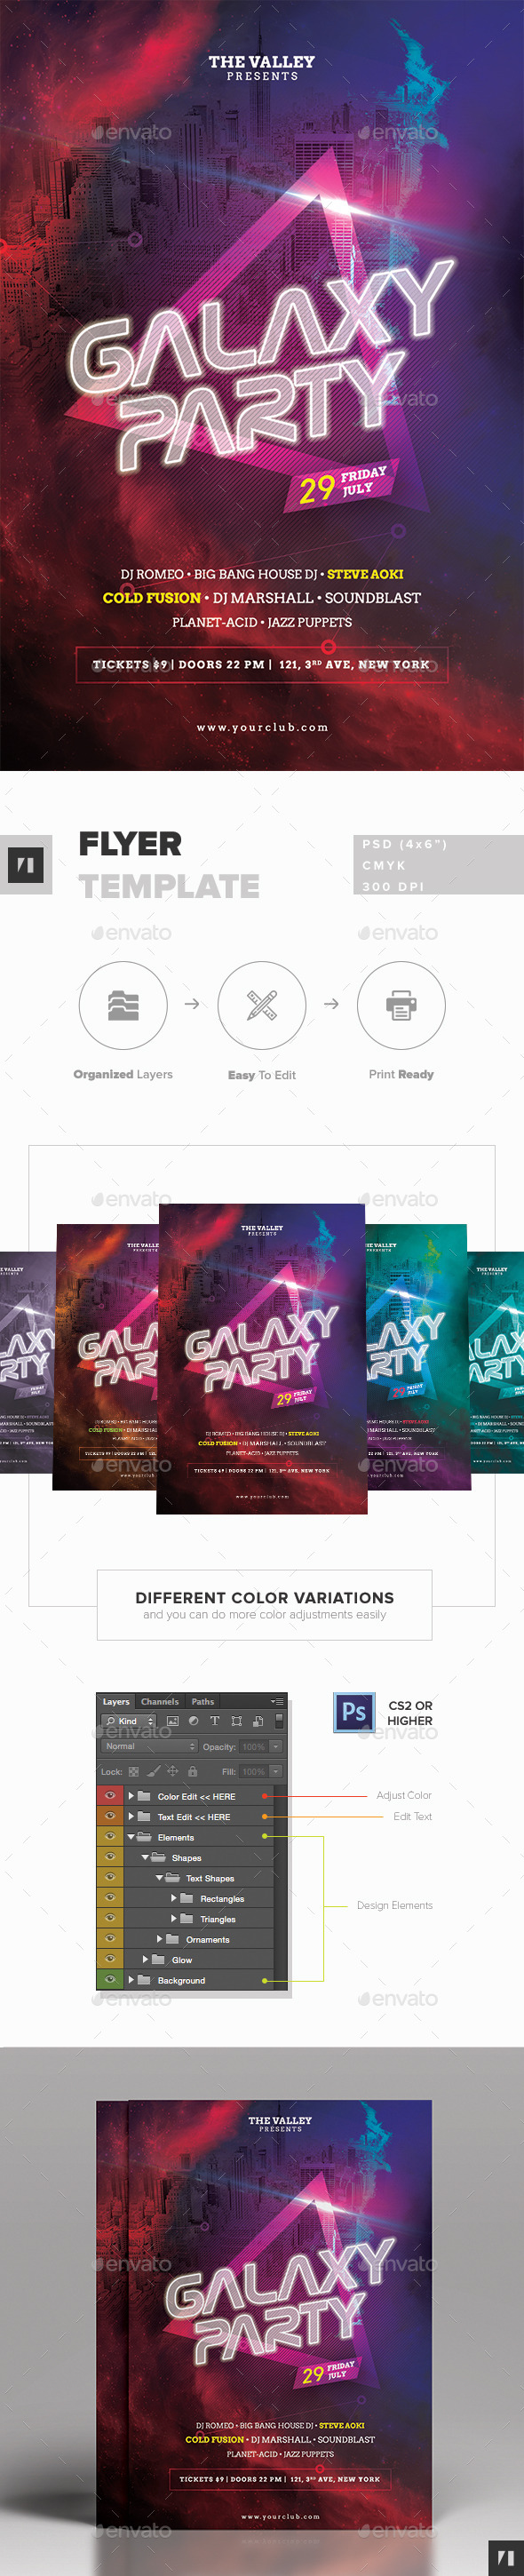 GraphicRiver Galaxy Party Flyer Template 11955556